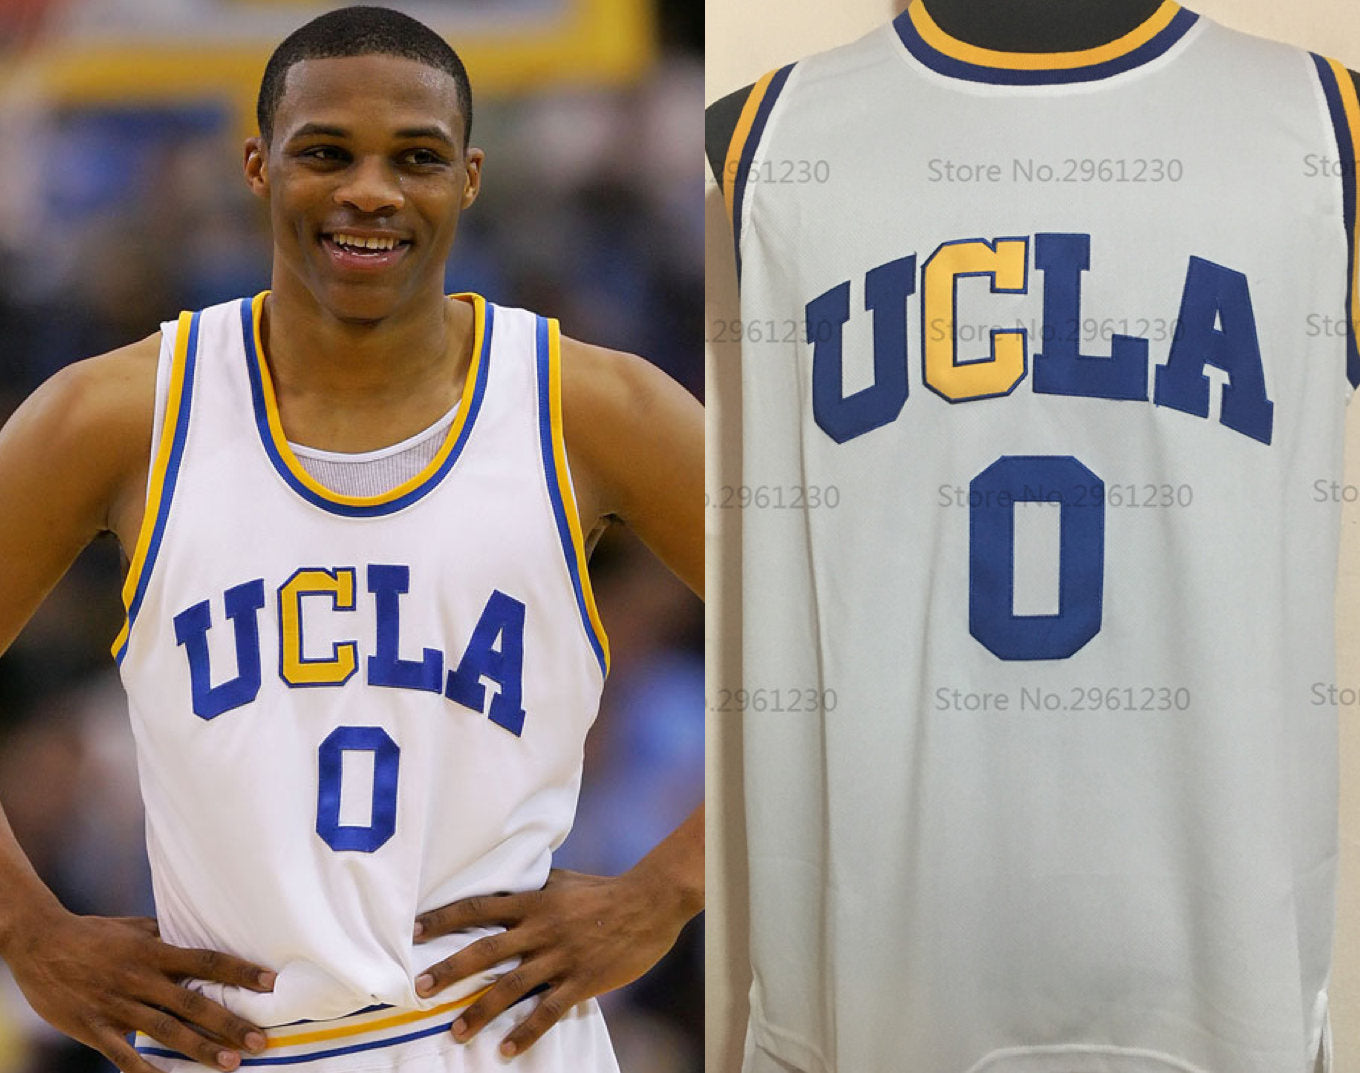 Russell Westbrook UCLA College Jersey Basketball Jersey (Home) Custom Throwback Retro College Jersey